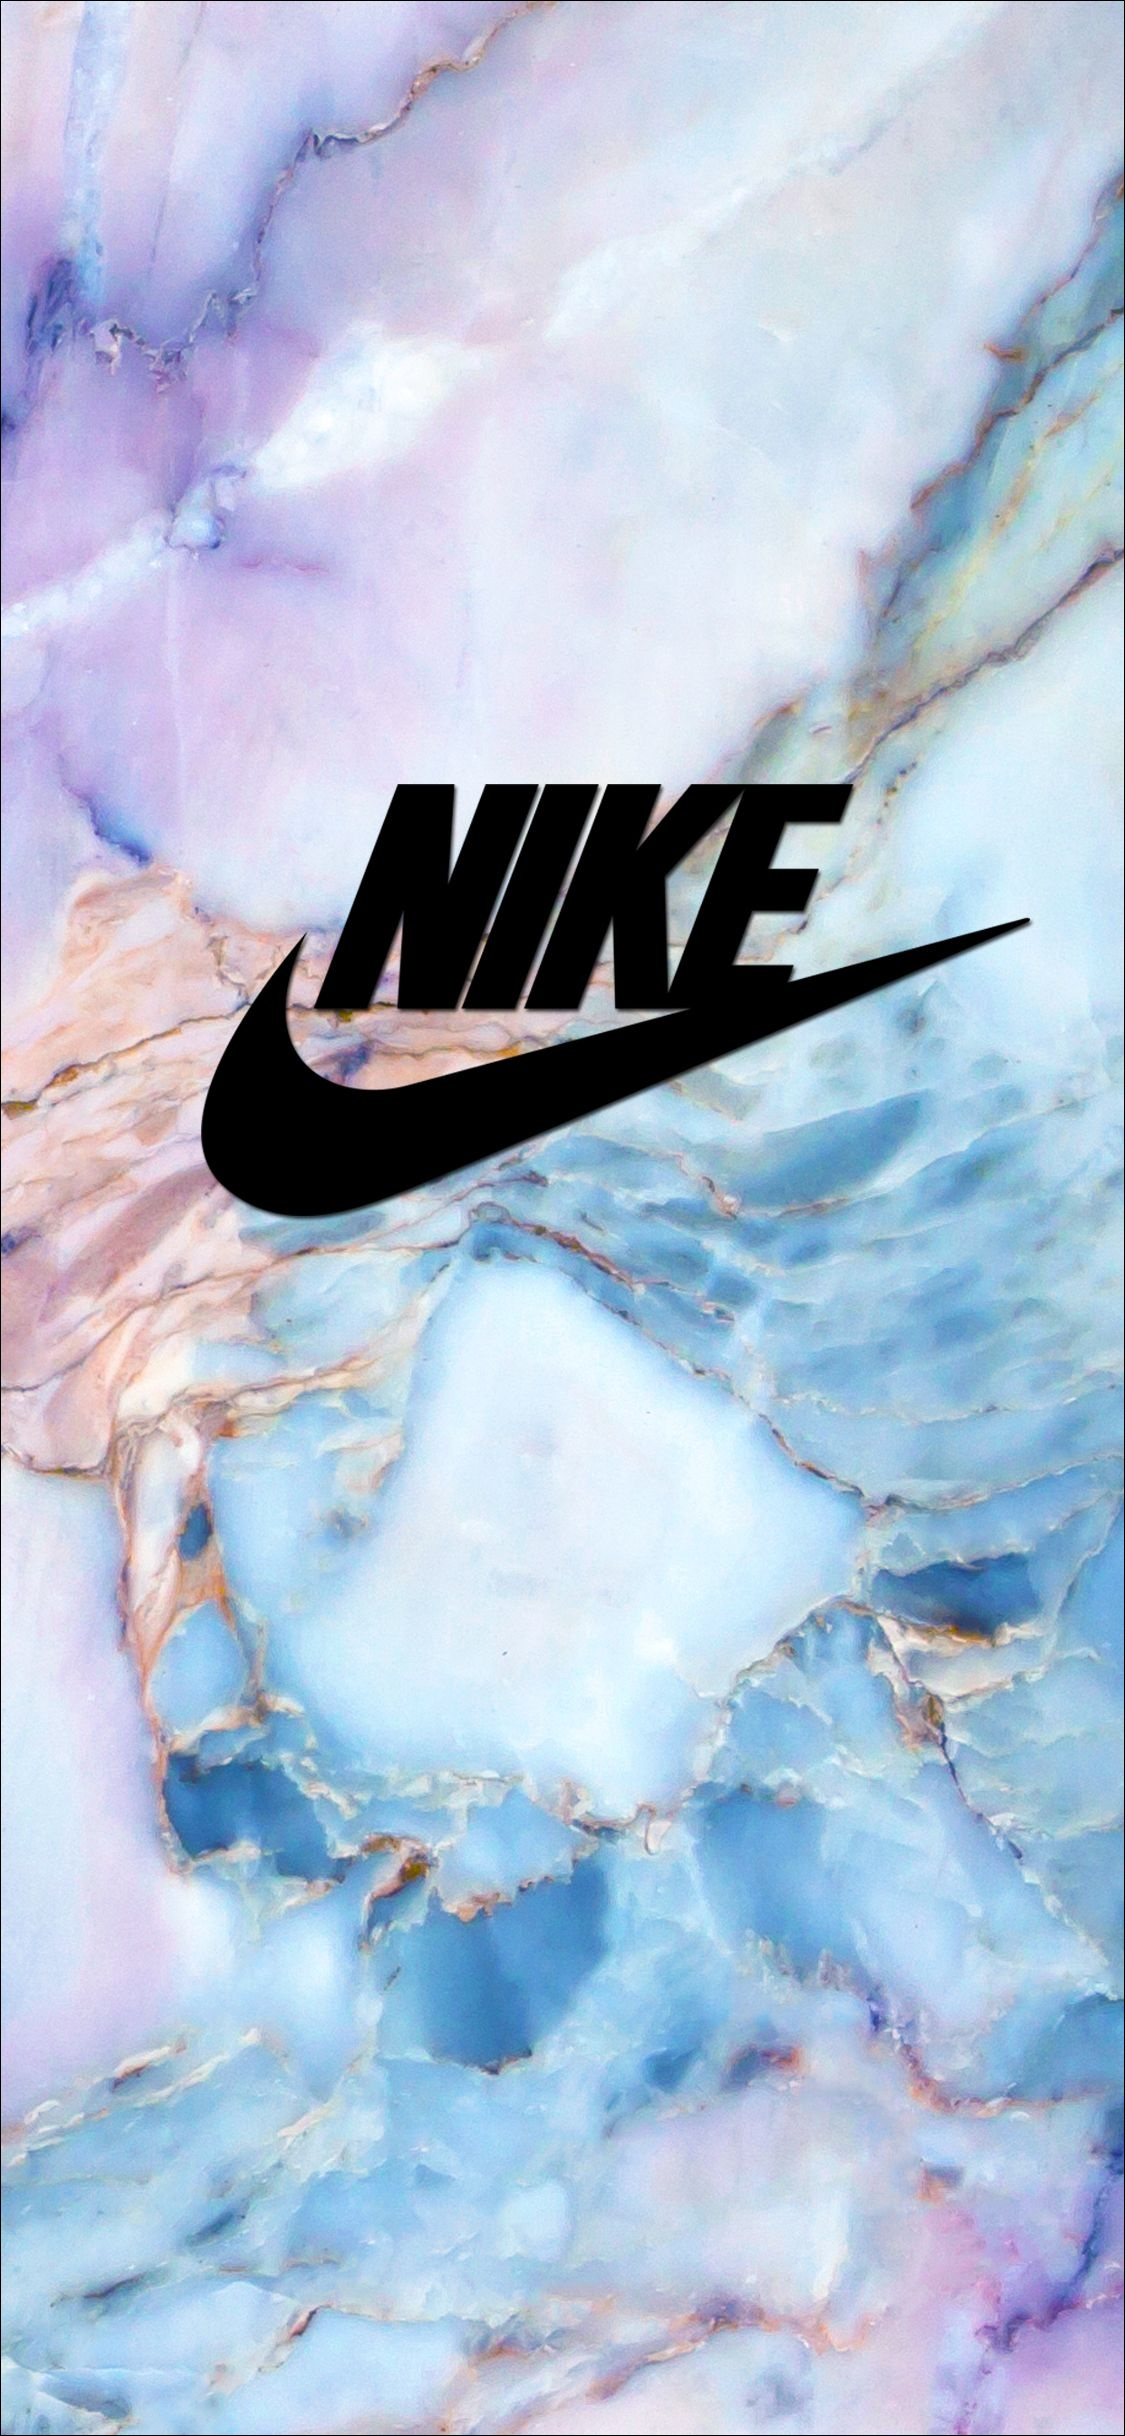 Noche Mil millones Mucho  Free download Nike Iphone X Wallpaper You Can Order Iphone Case With Nike  [1125x2436] for your Desktop, Mobile & Tablet | Explore 54+ Nikewallpaper |  Cool Nike Wallpapers, Nike Wallpaper Just Do